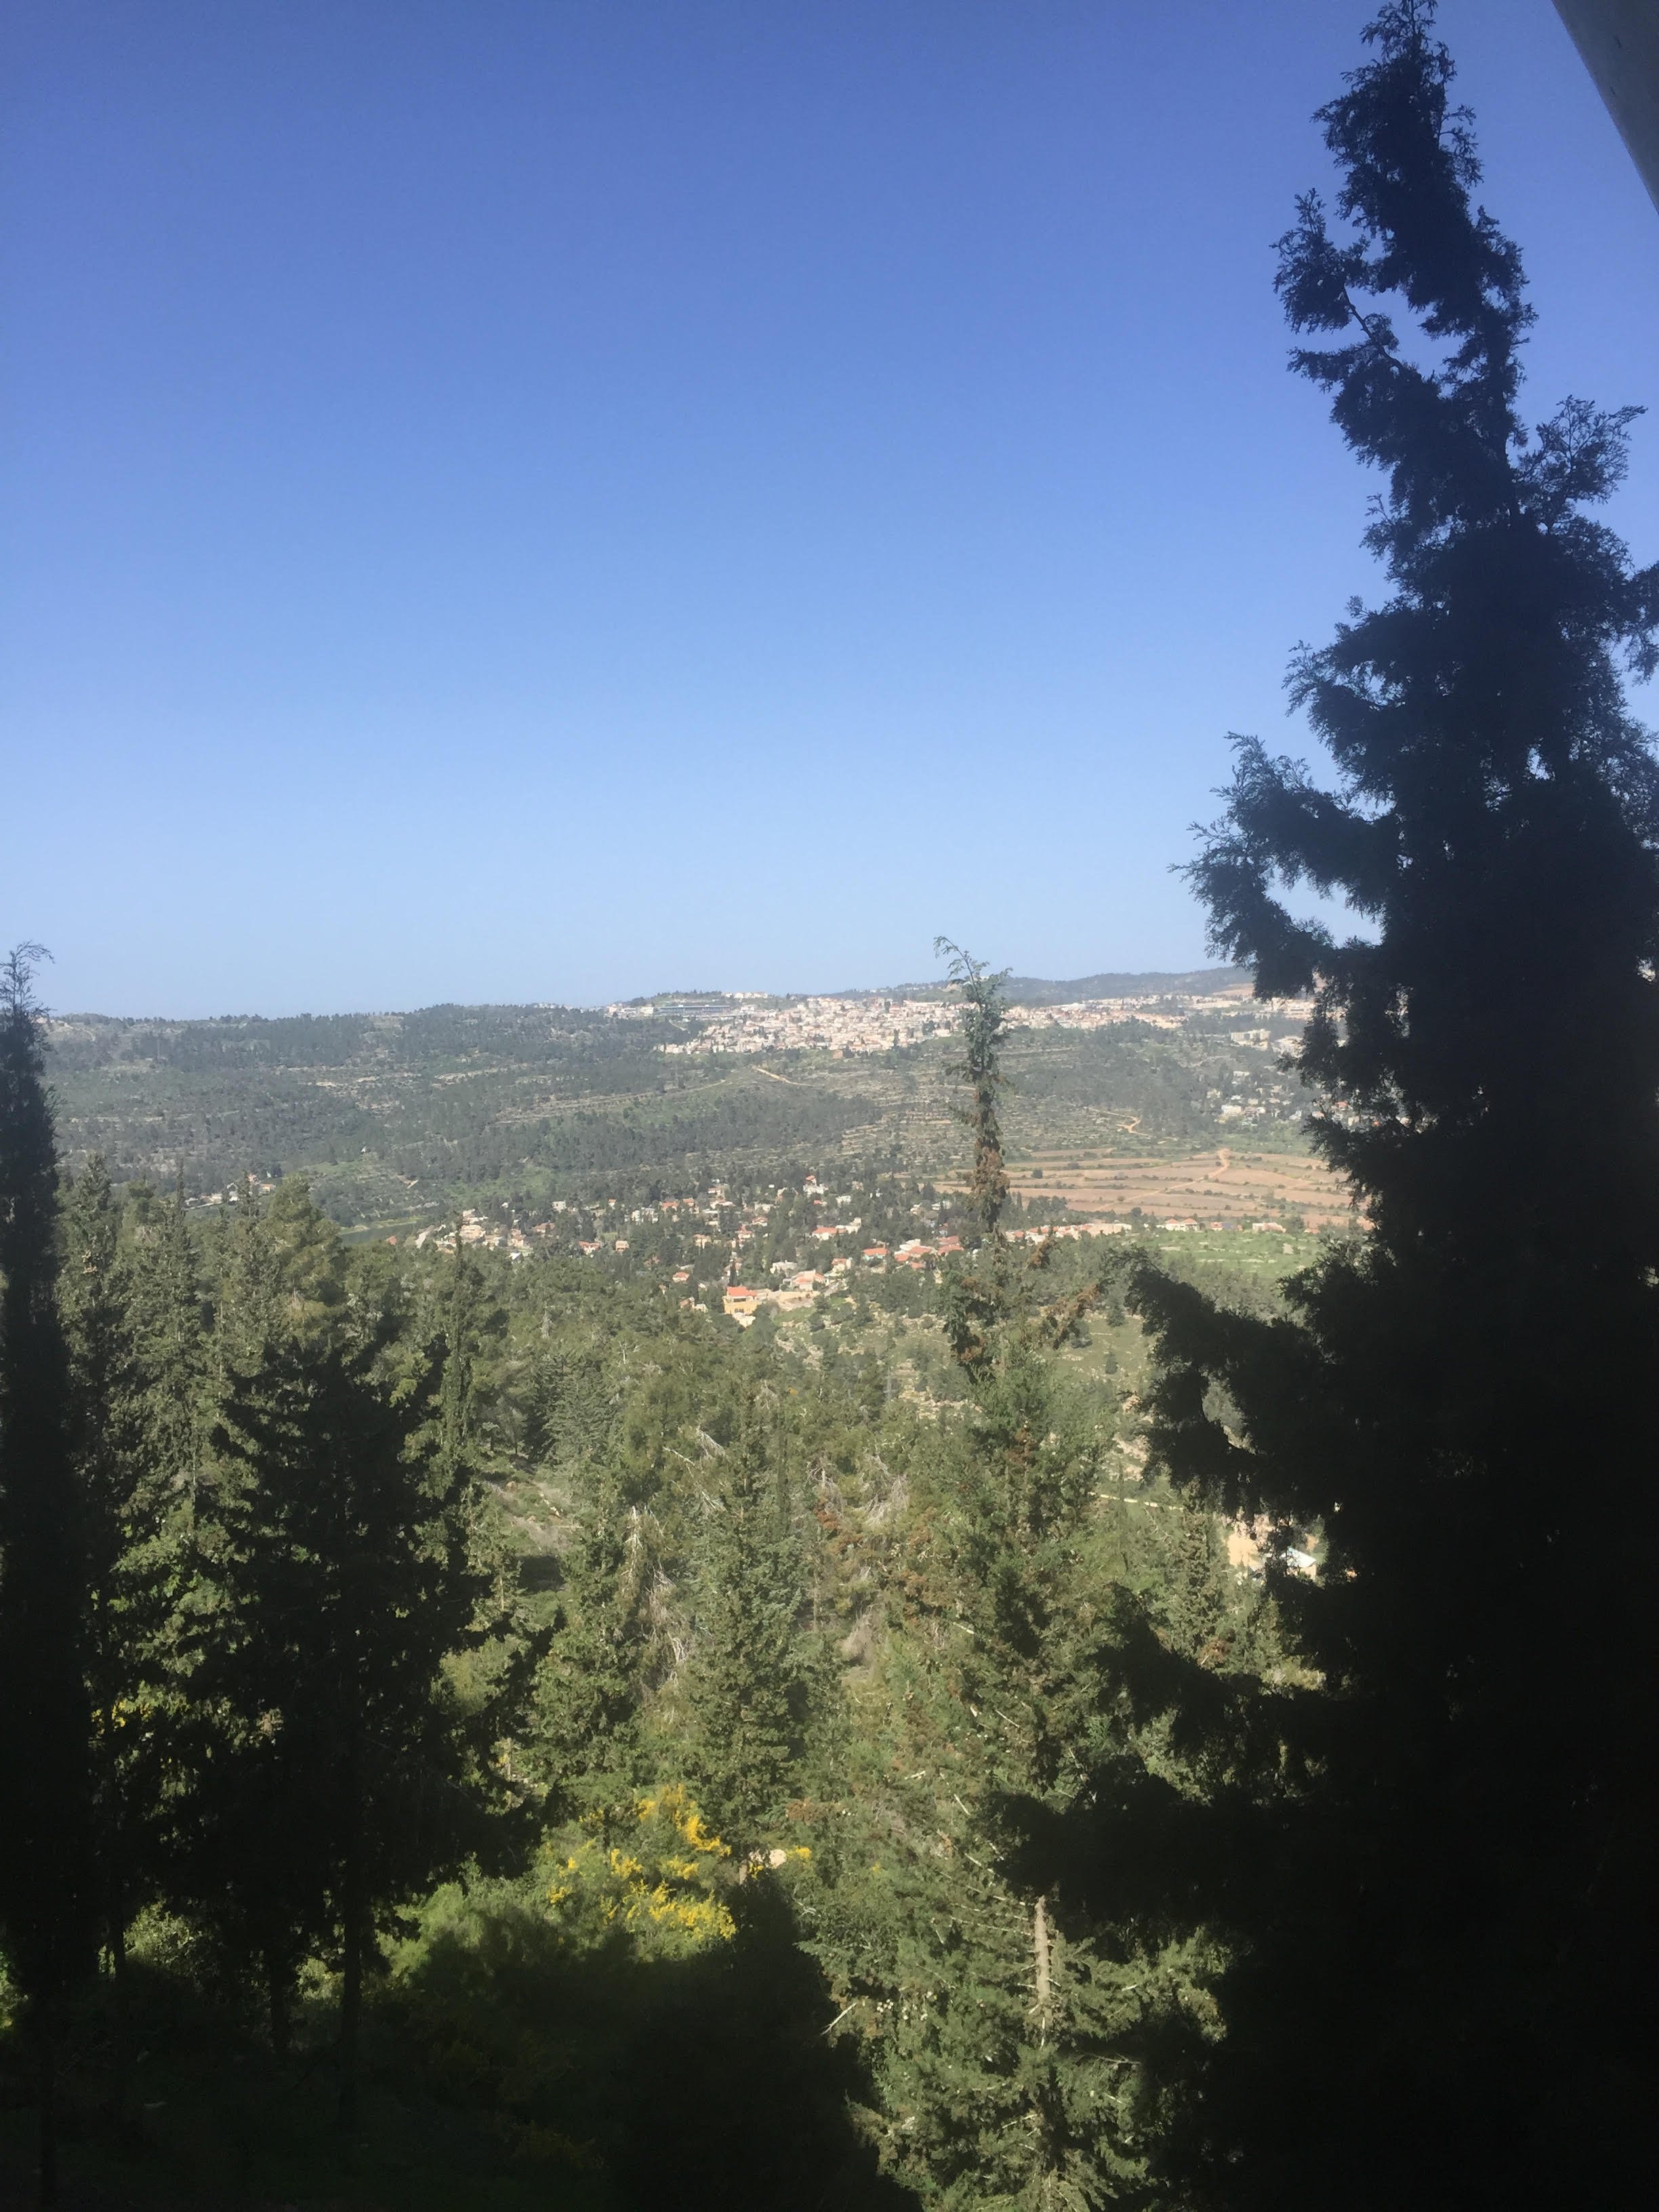 Trip to Israel: Day 3